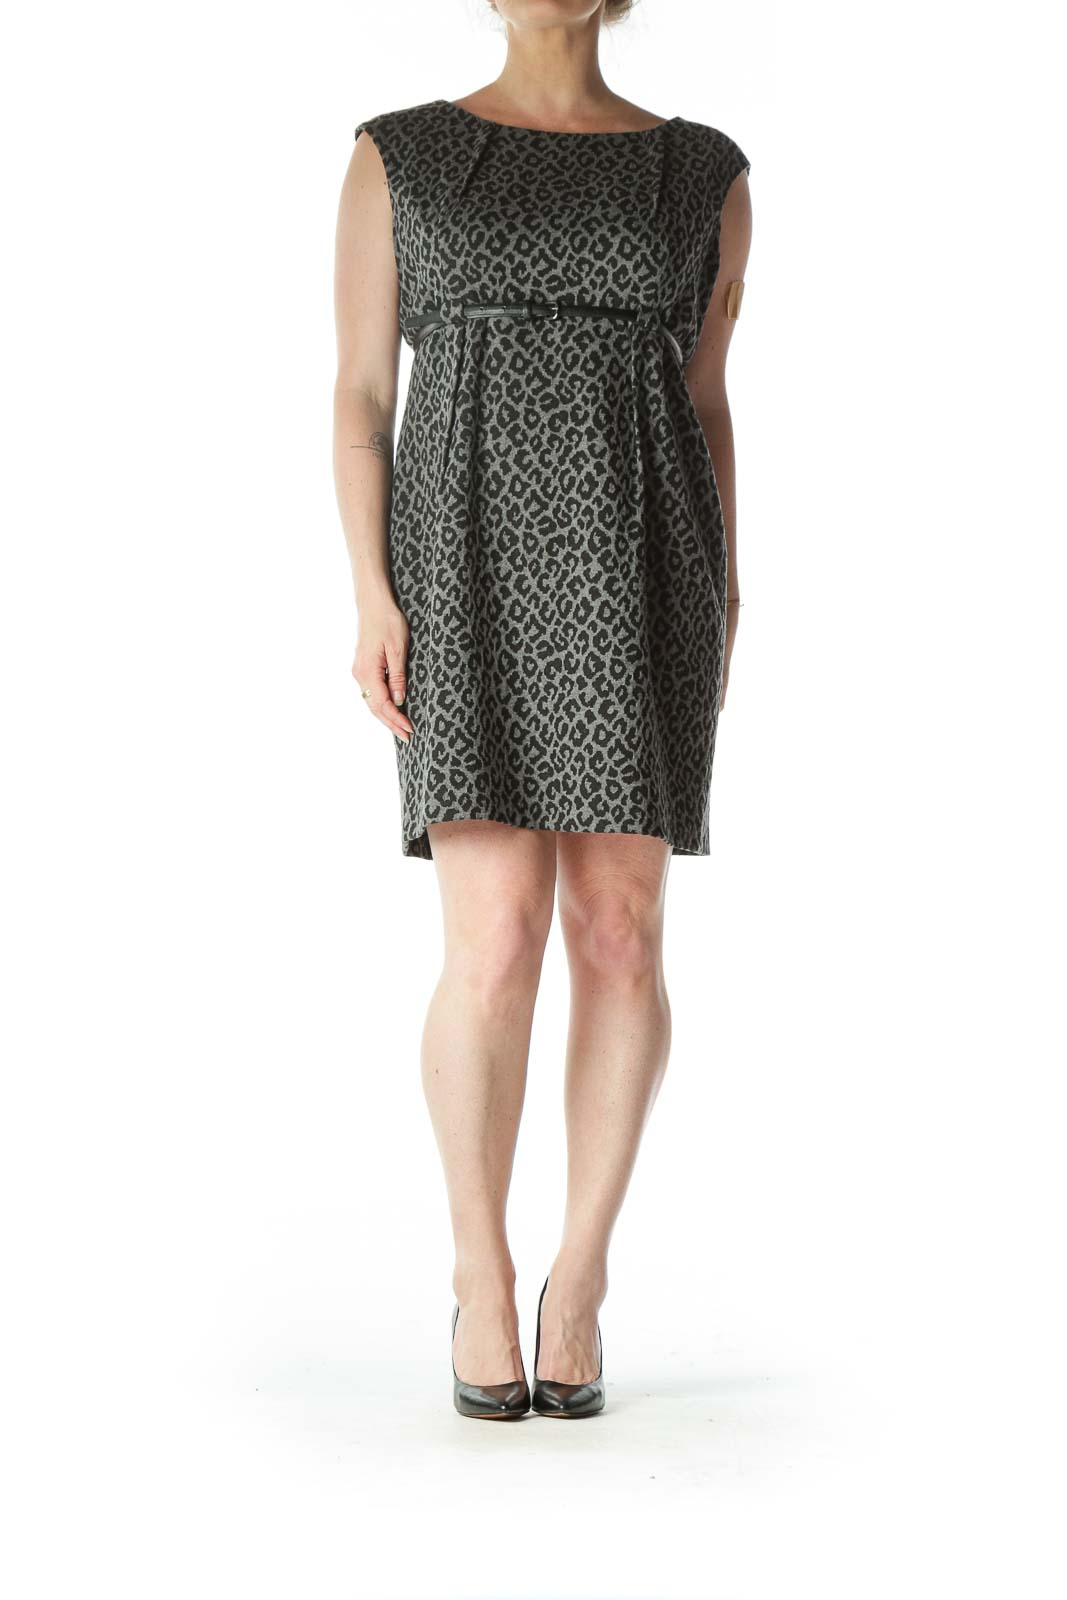 Gray Black Leopard Print Textured Belted Work Dress